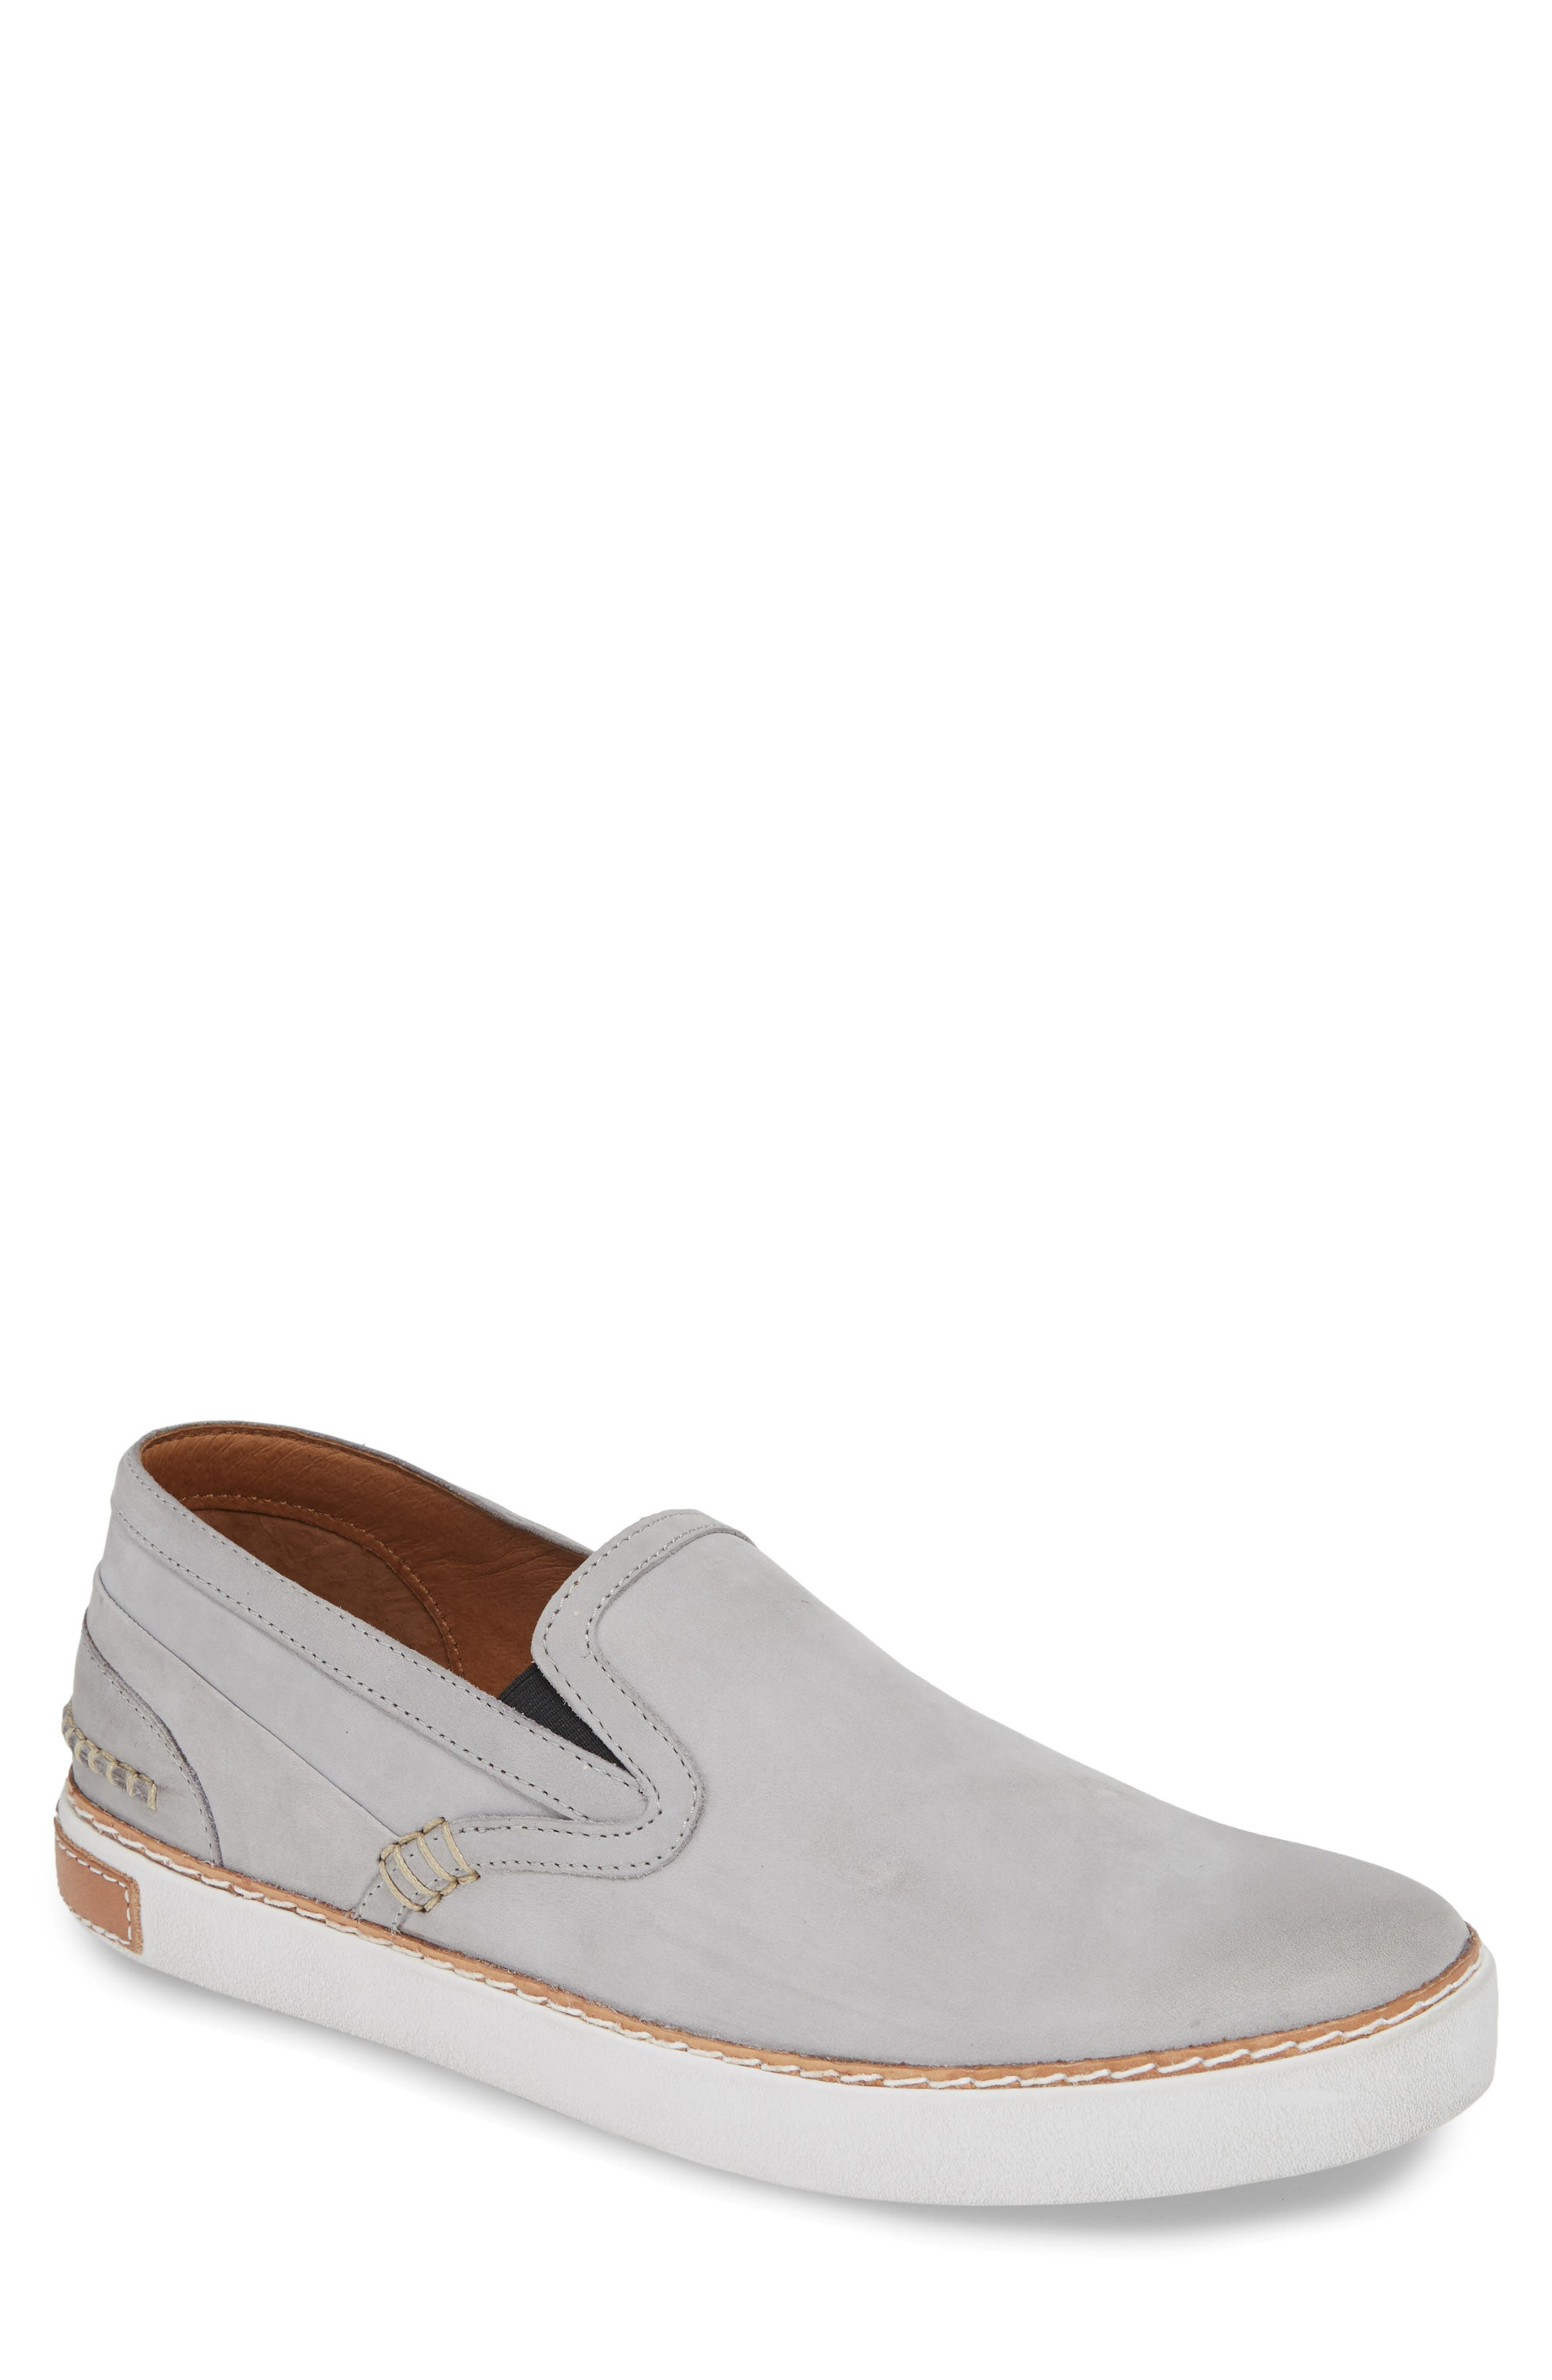 Earthy leather forms a handsome slip-on with laid-back style. Style Name: Blackstone \\\'scm 003\\\' Slip-On (Men). Style Number: 155832 3. Available in stores.